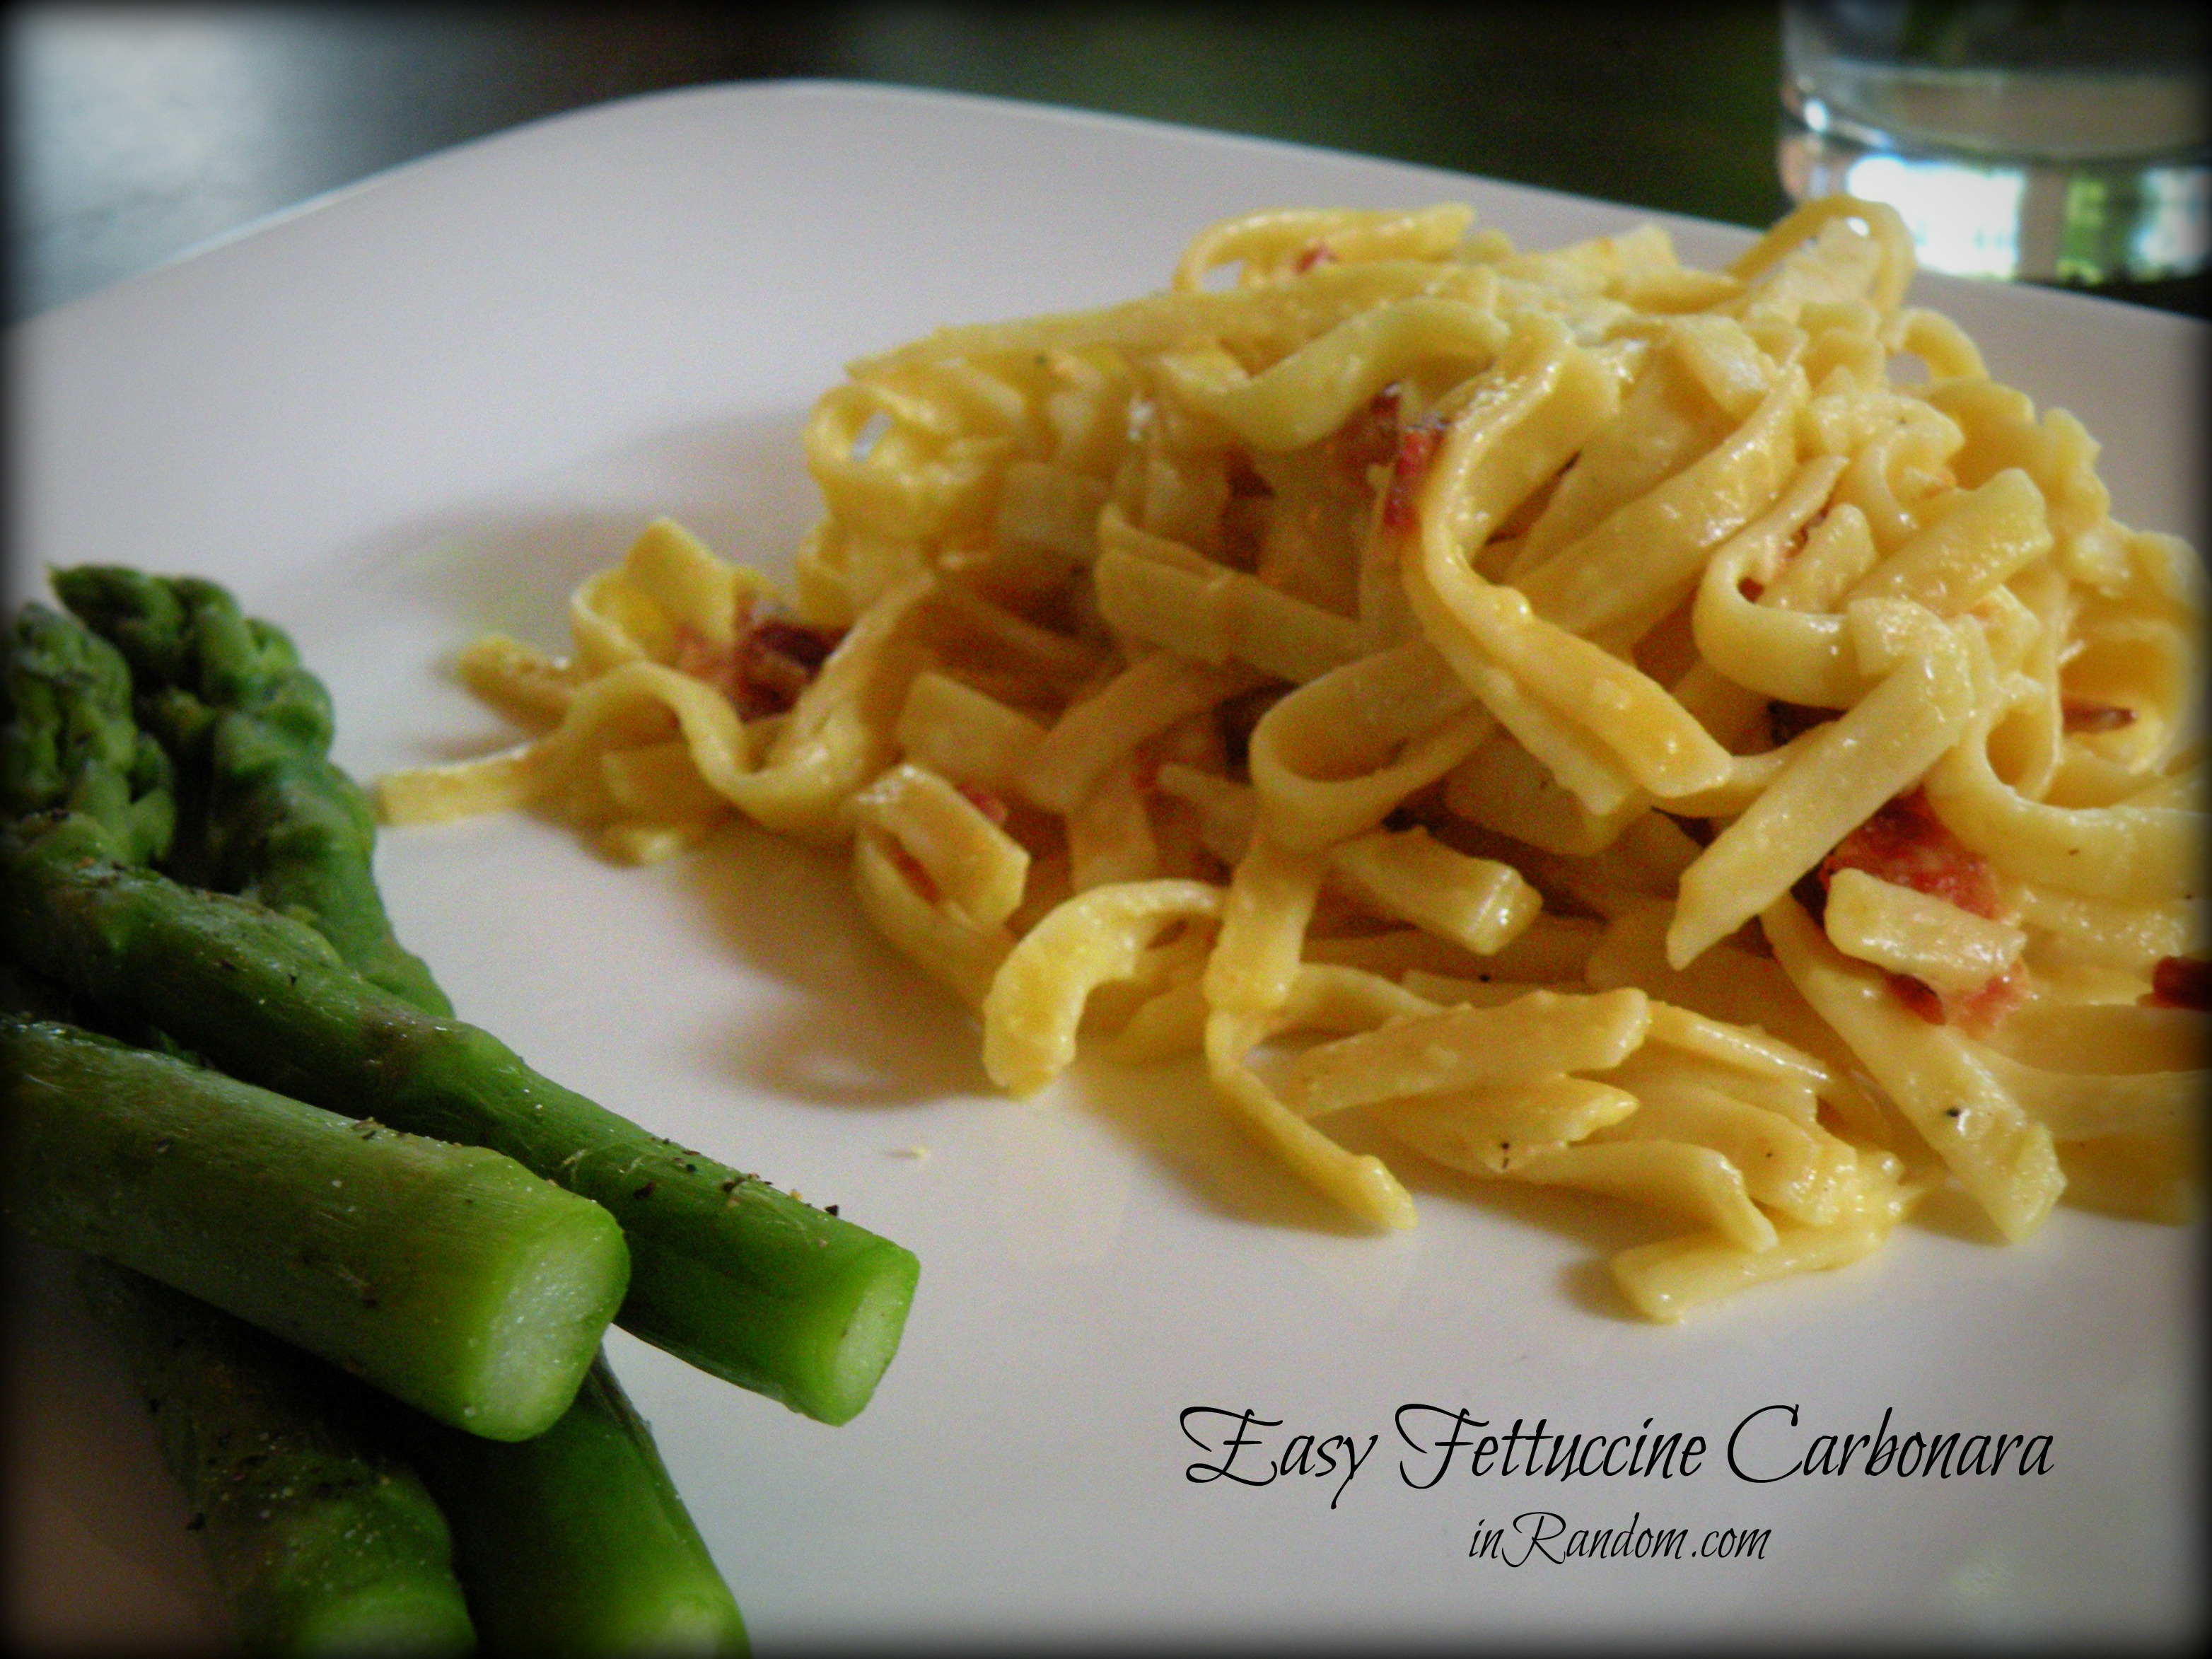 Easy recipe for fettuccine carbonara